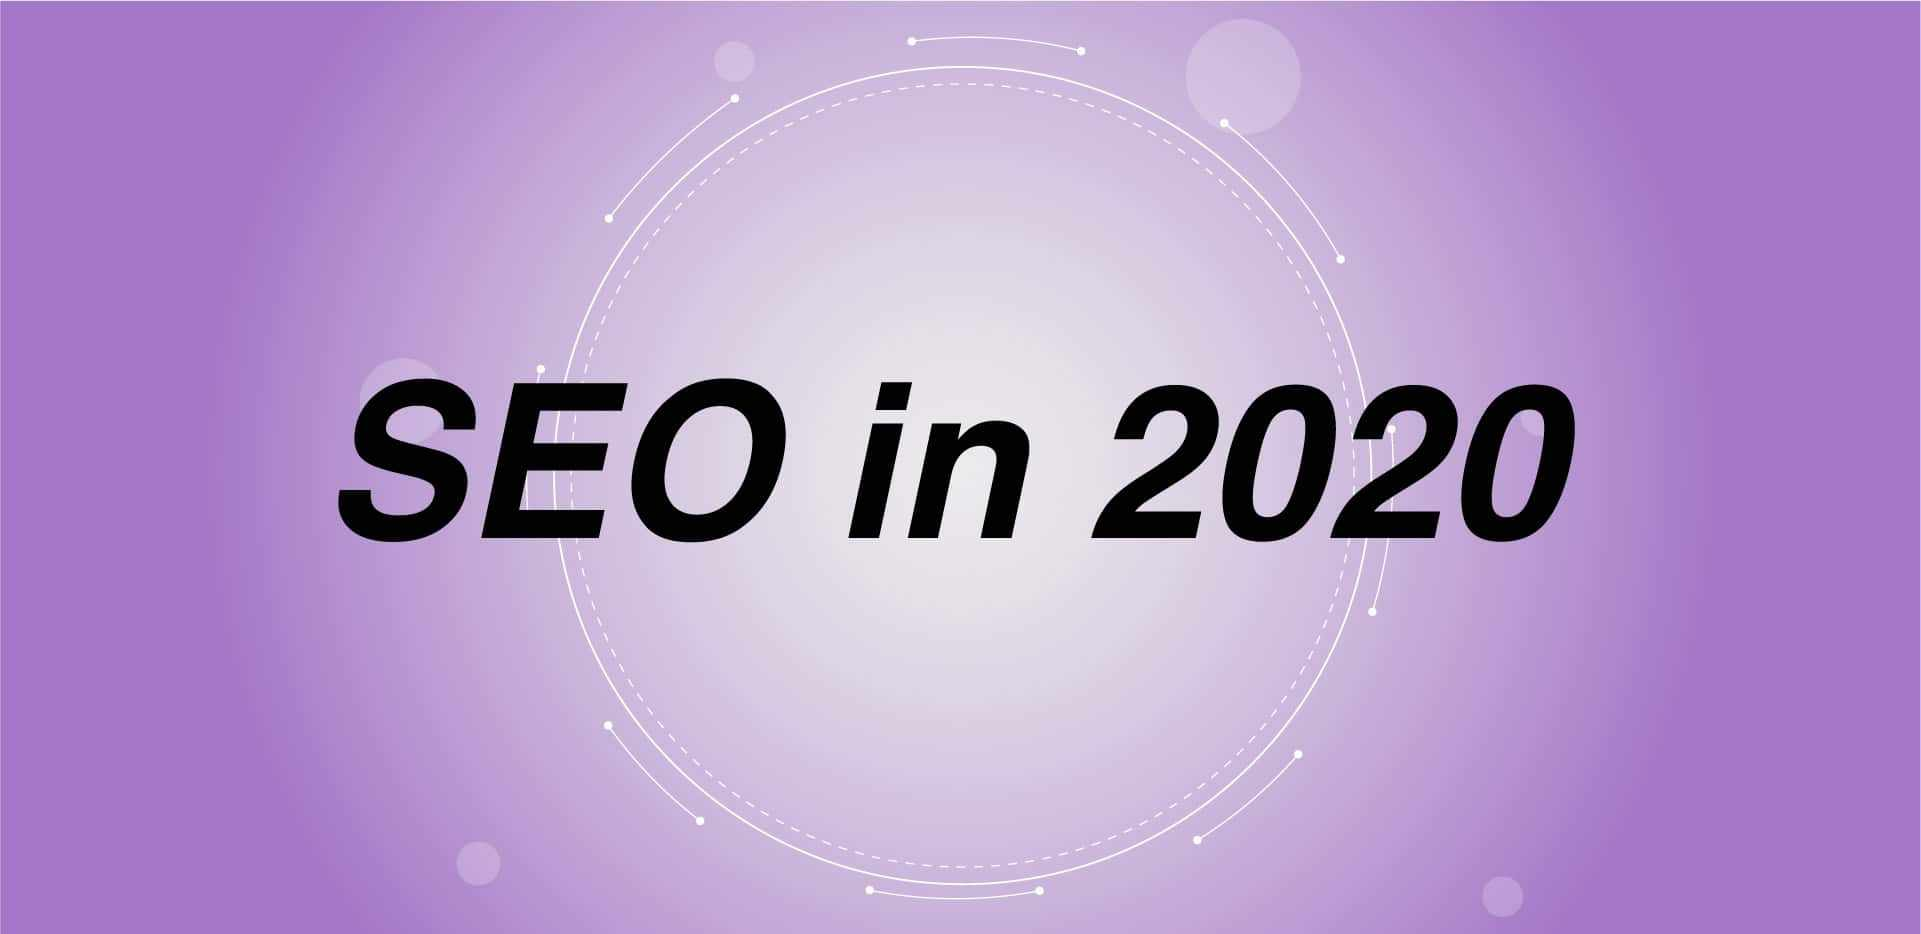 seo-in-2020-banner